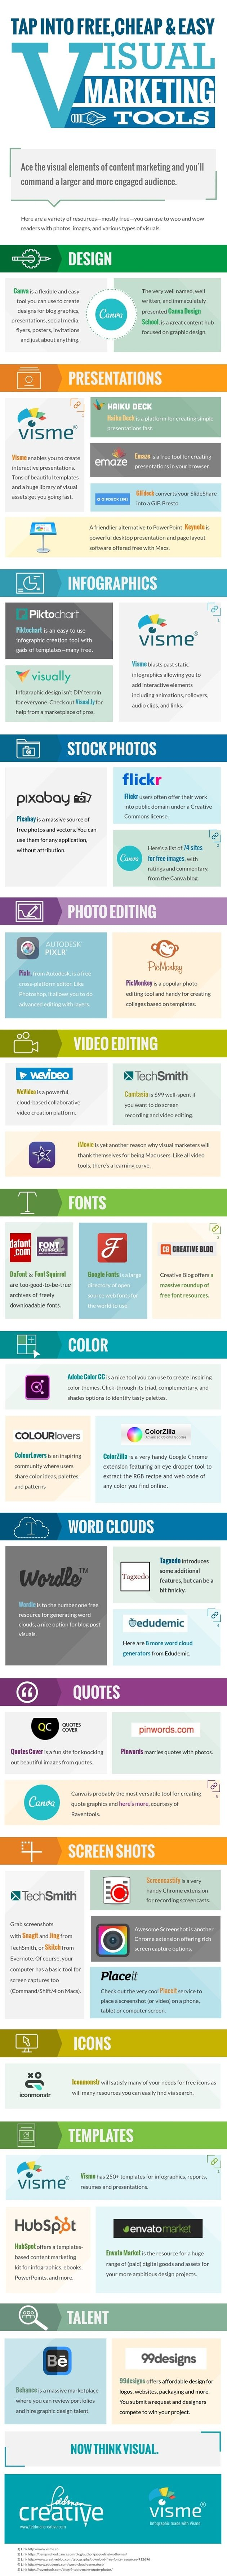 [Infographic] Tap Into Free, Cheap, and Easy Visual Marketing Tools